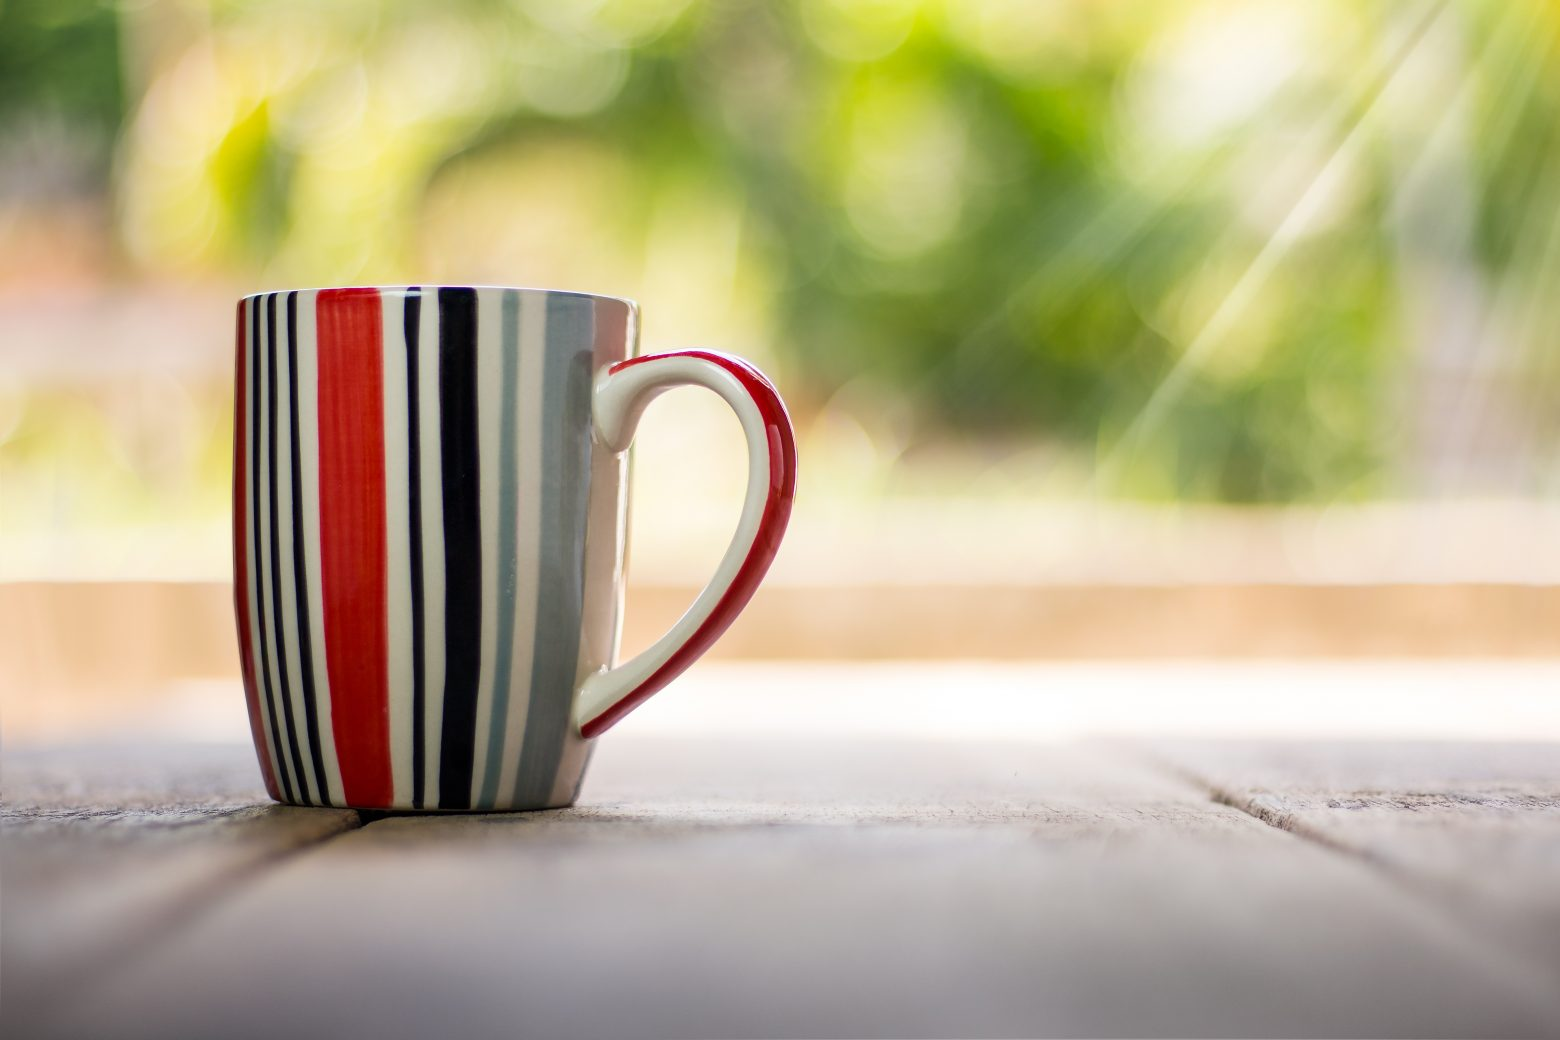 cup-2315565